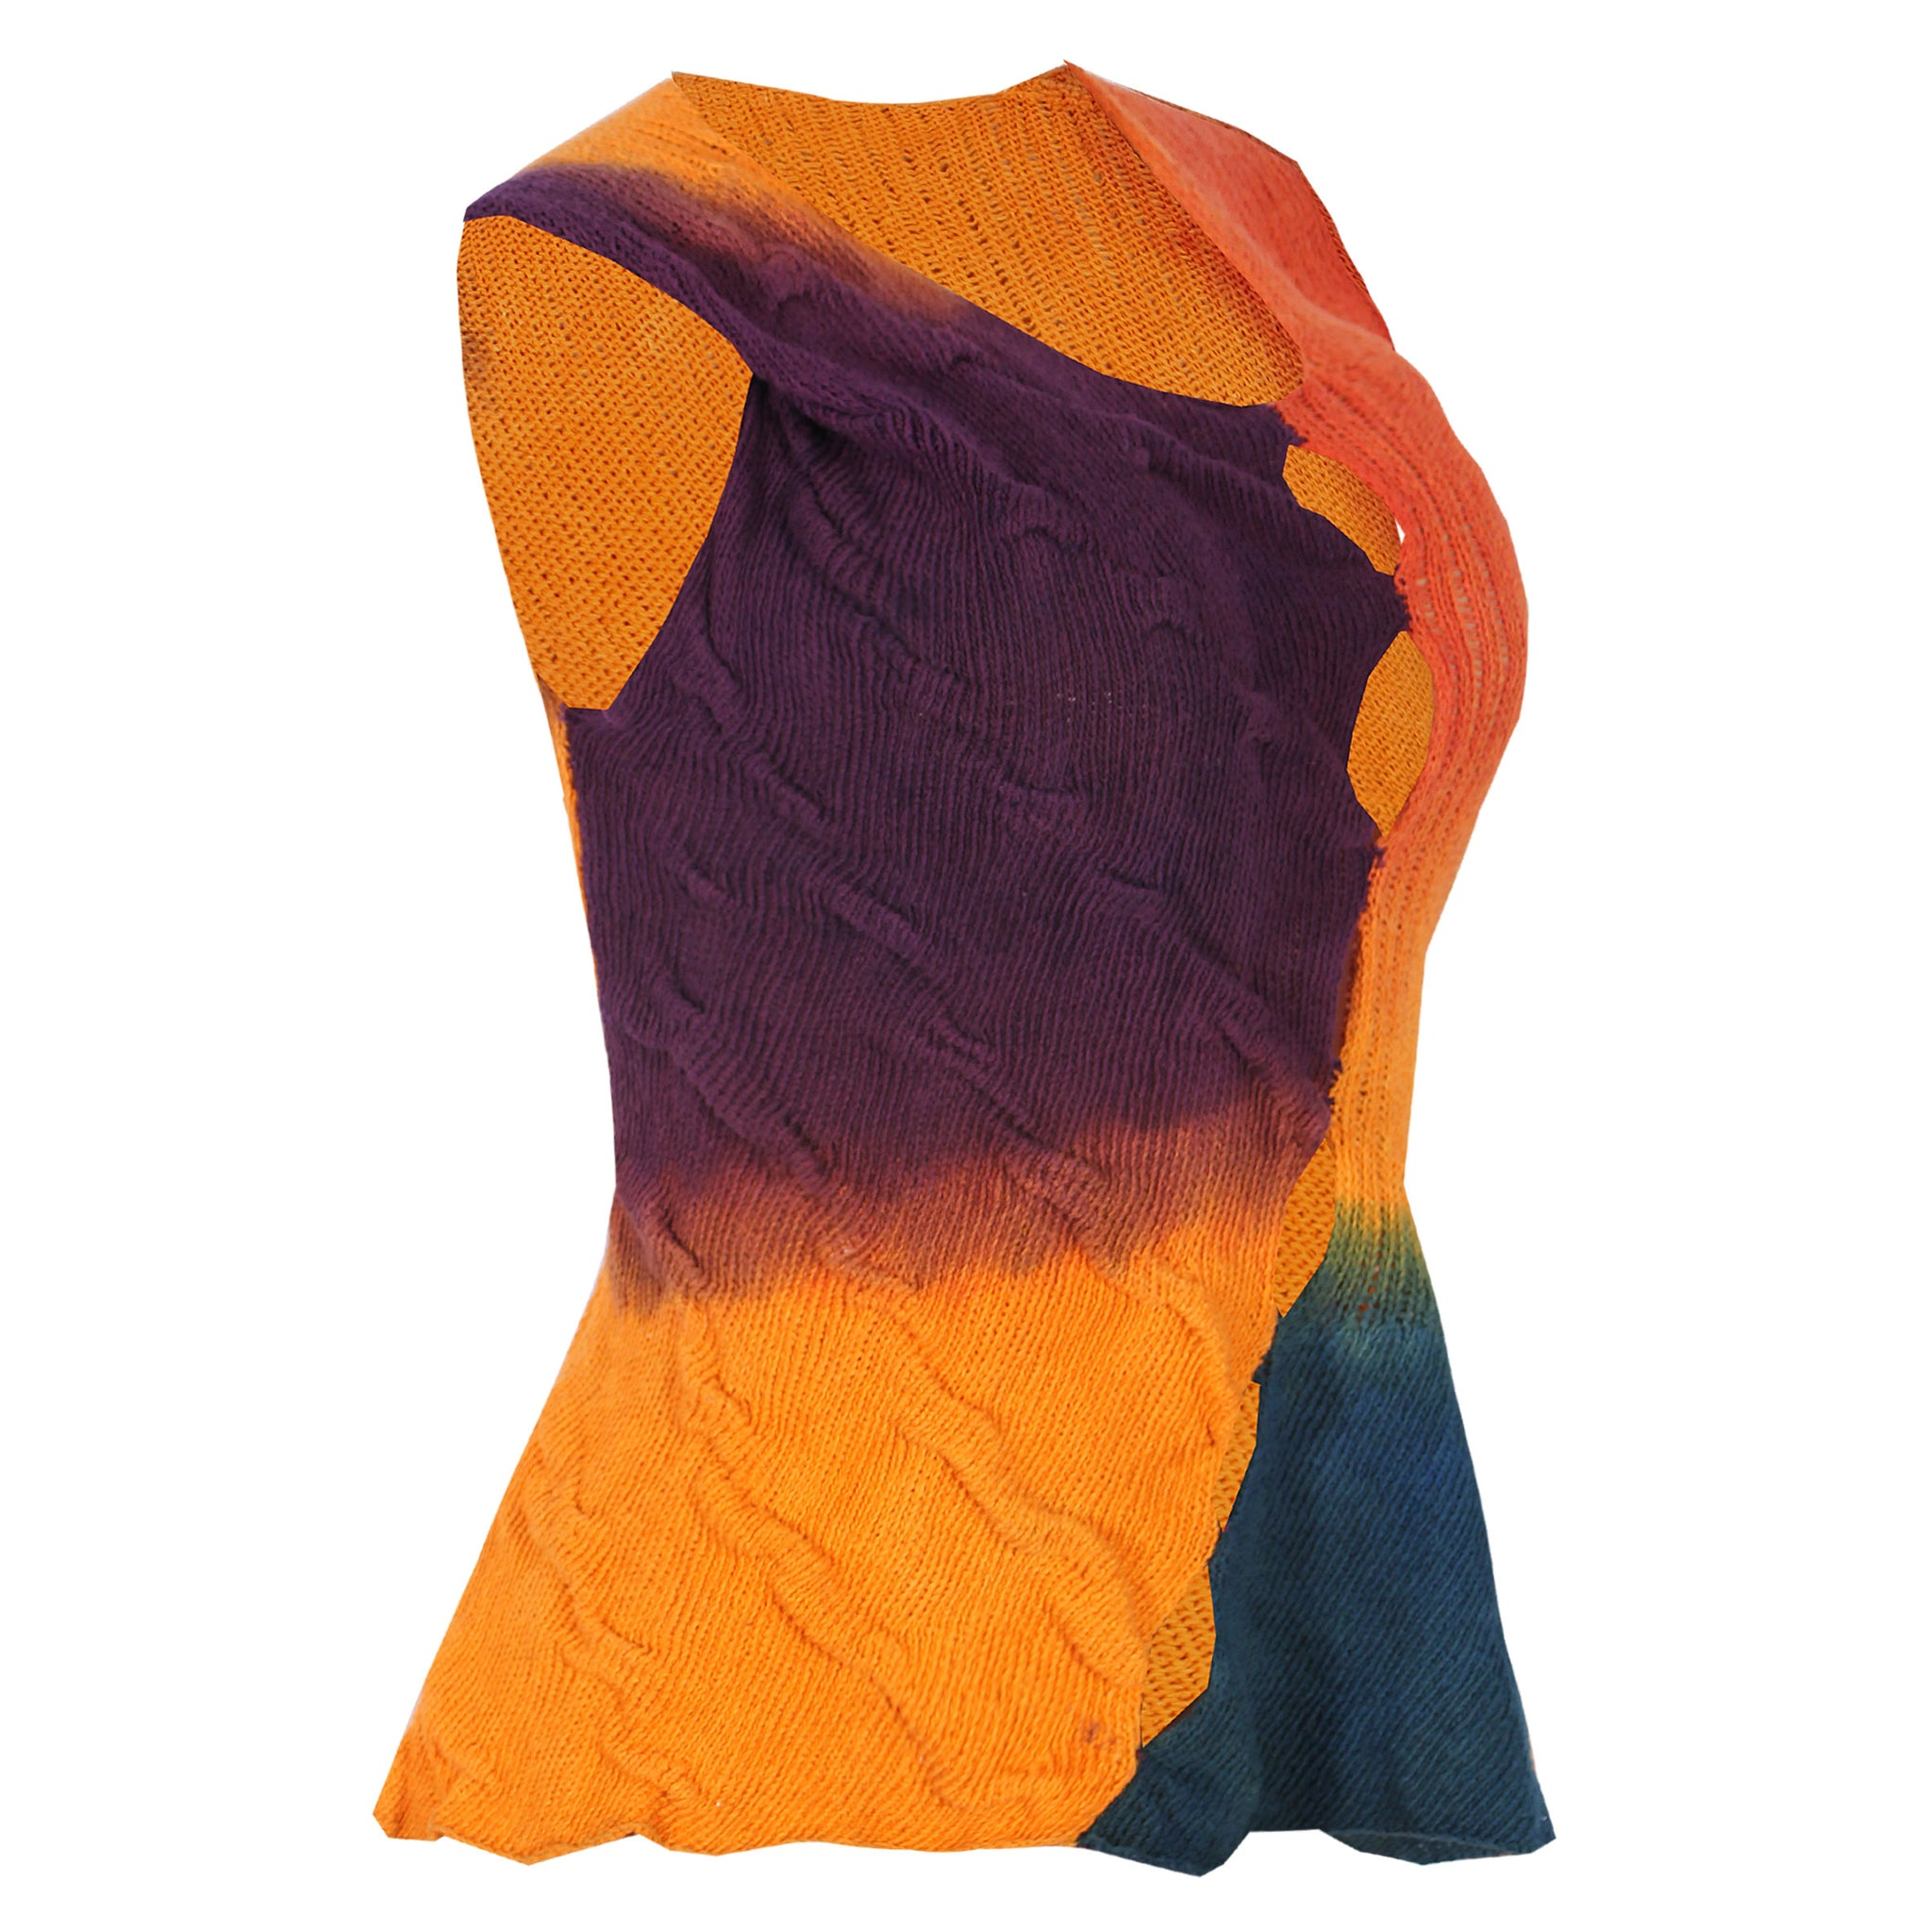 HAND DYED MULTICOLOUR COTTON KNIT VEST